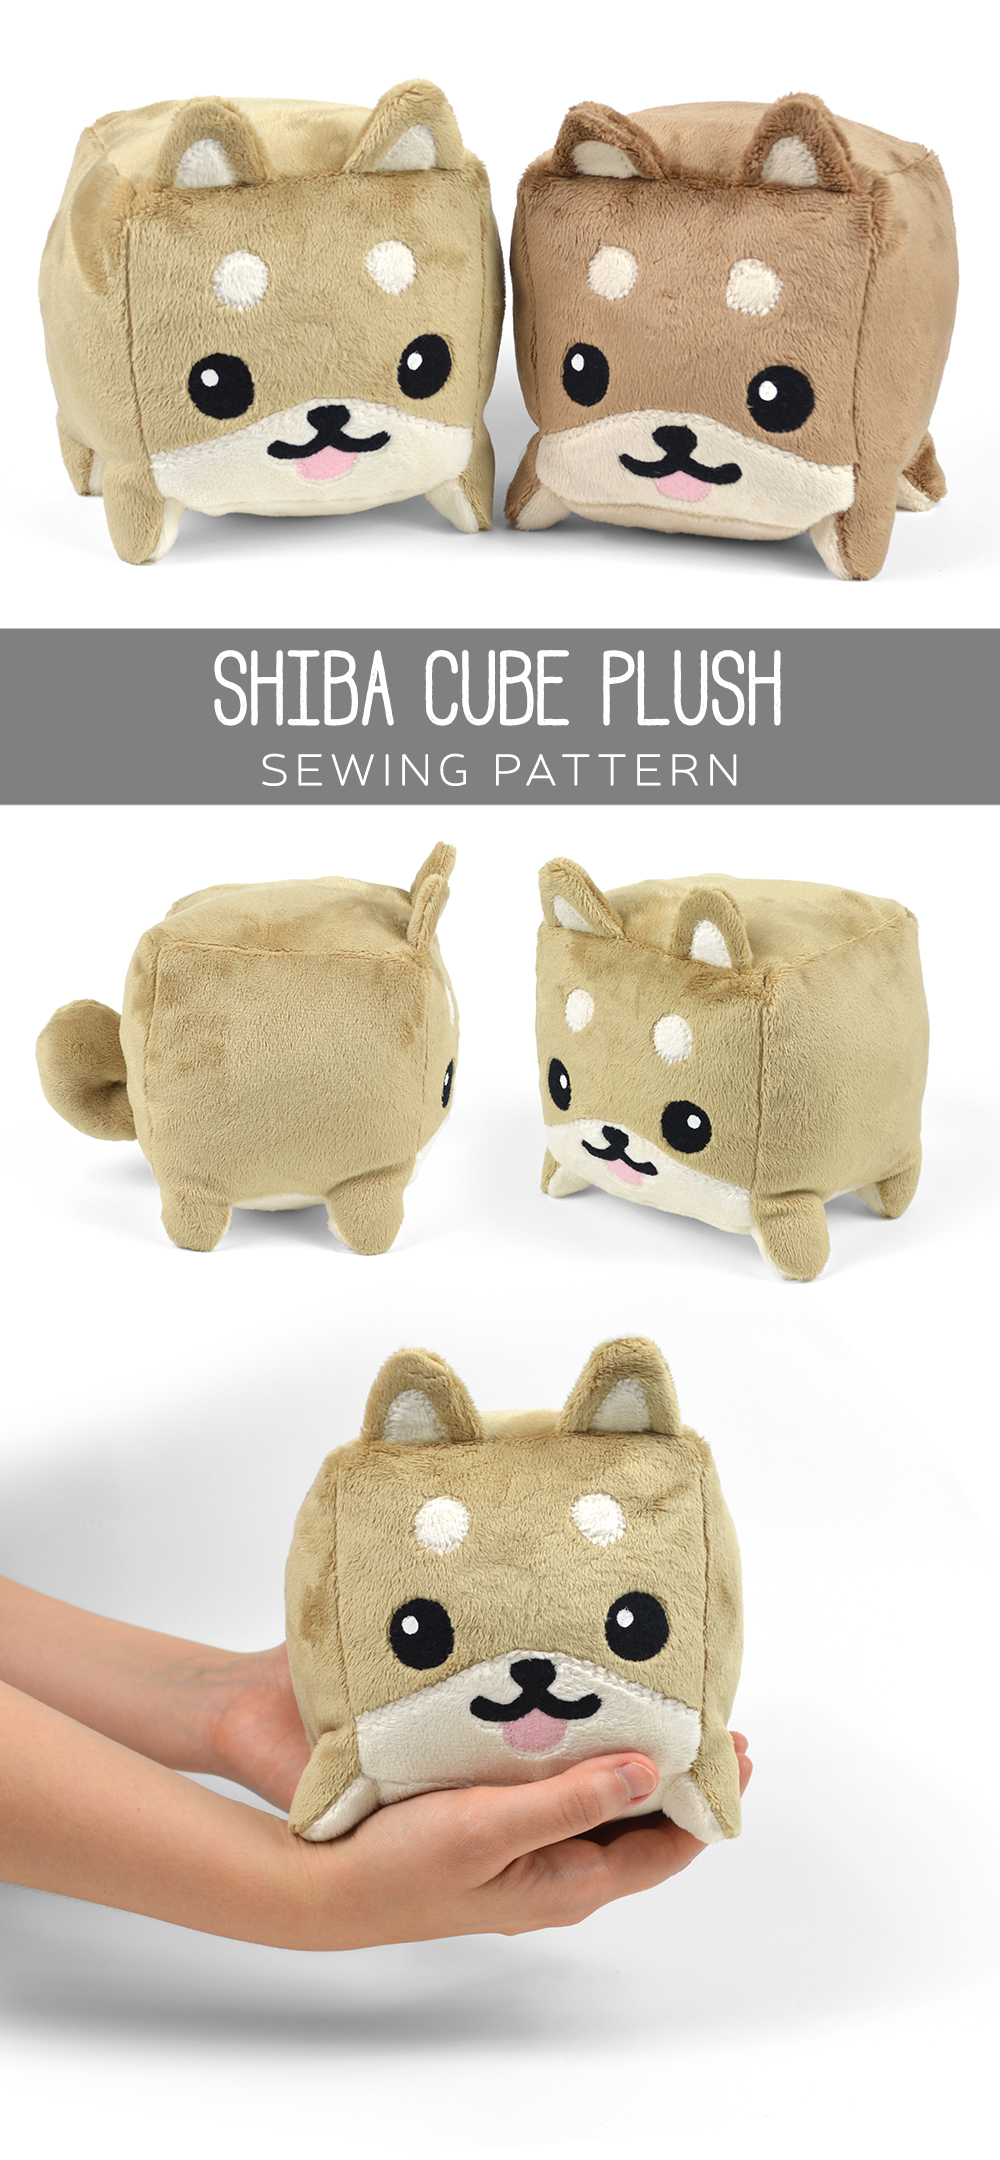 Free Pattern Friday! Shiba Cube Plush | Choly Knight